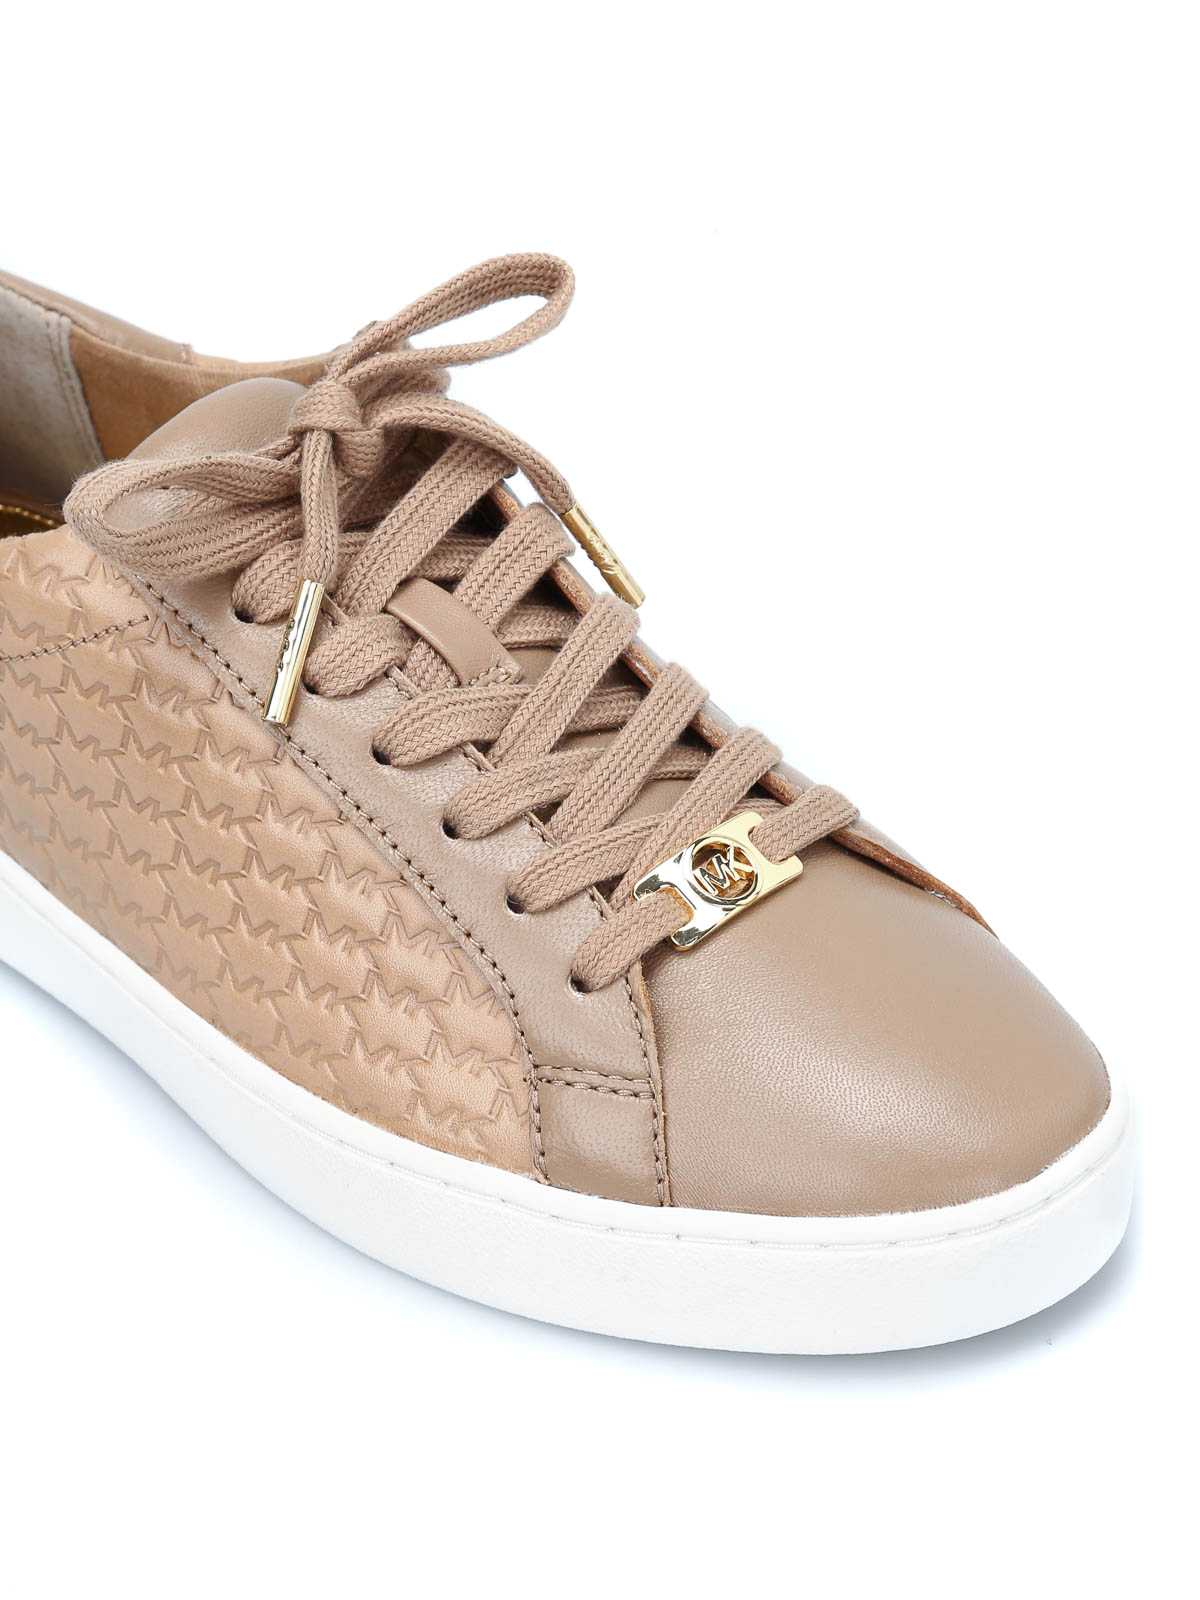 Michael Kors - Colby leather sneakers